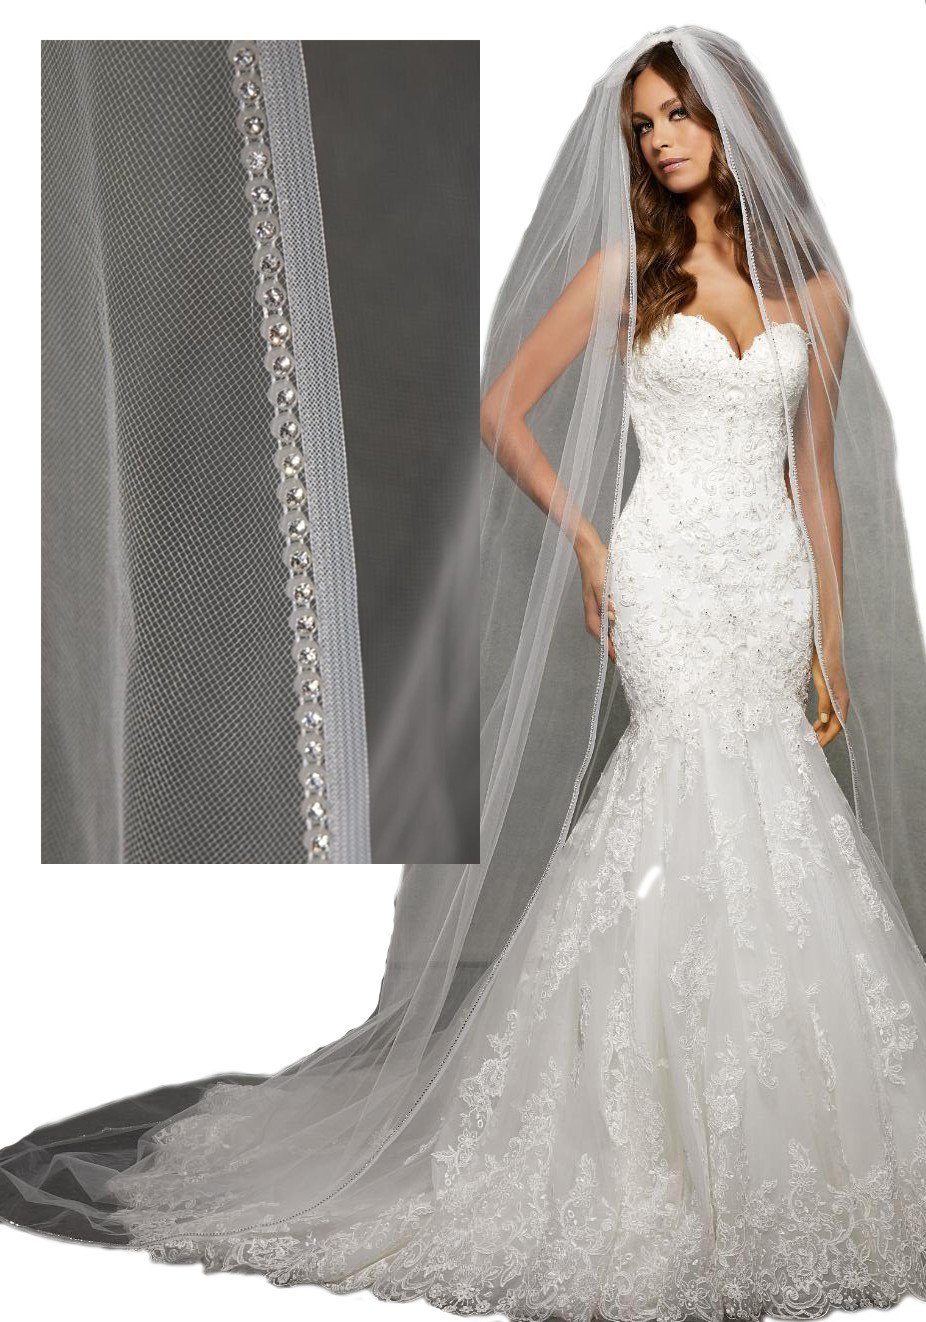 Passat Pale Ivory Single-Tier 3M Cathedral Wedding Bridal Veil Edged with Narrow Horsehair and Rhinestones VL1058 by Passat